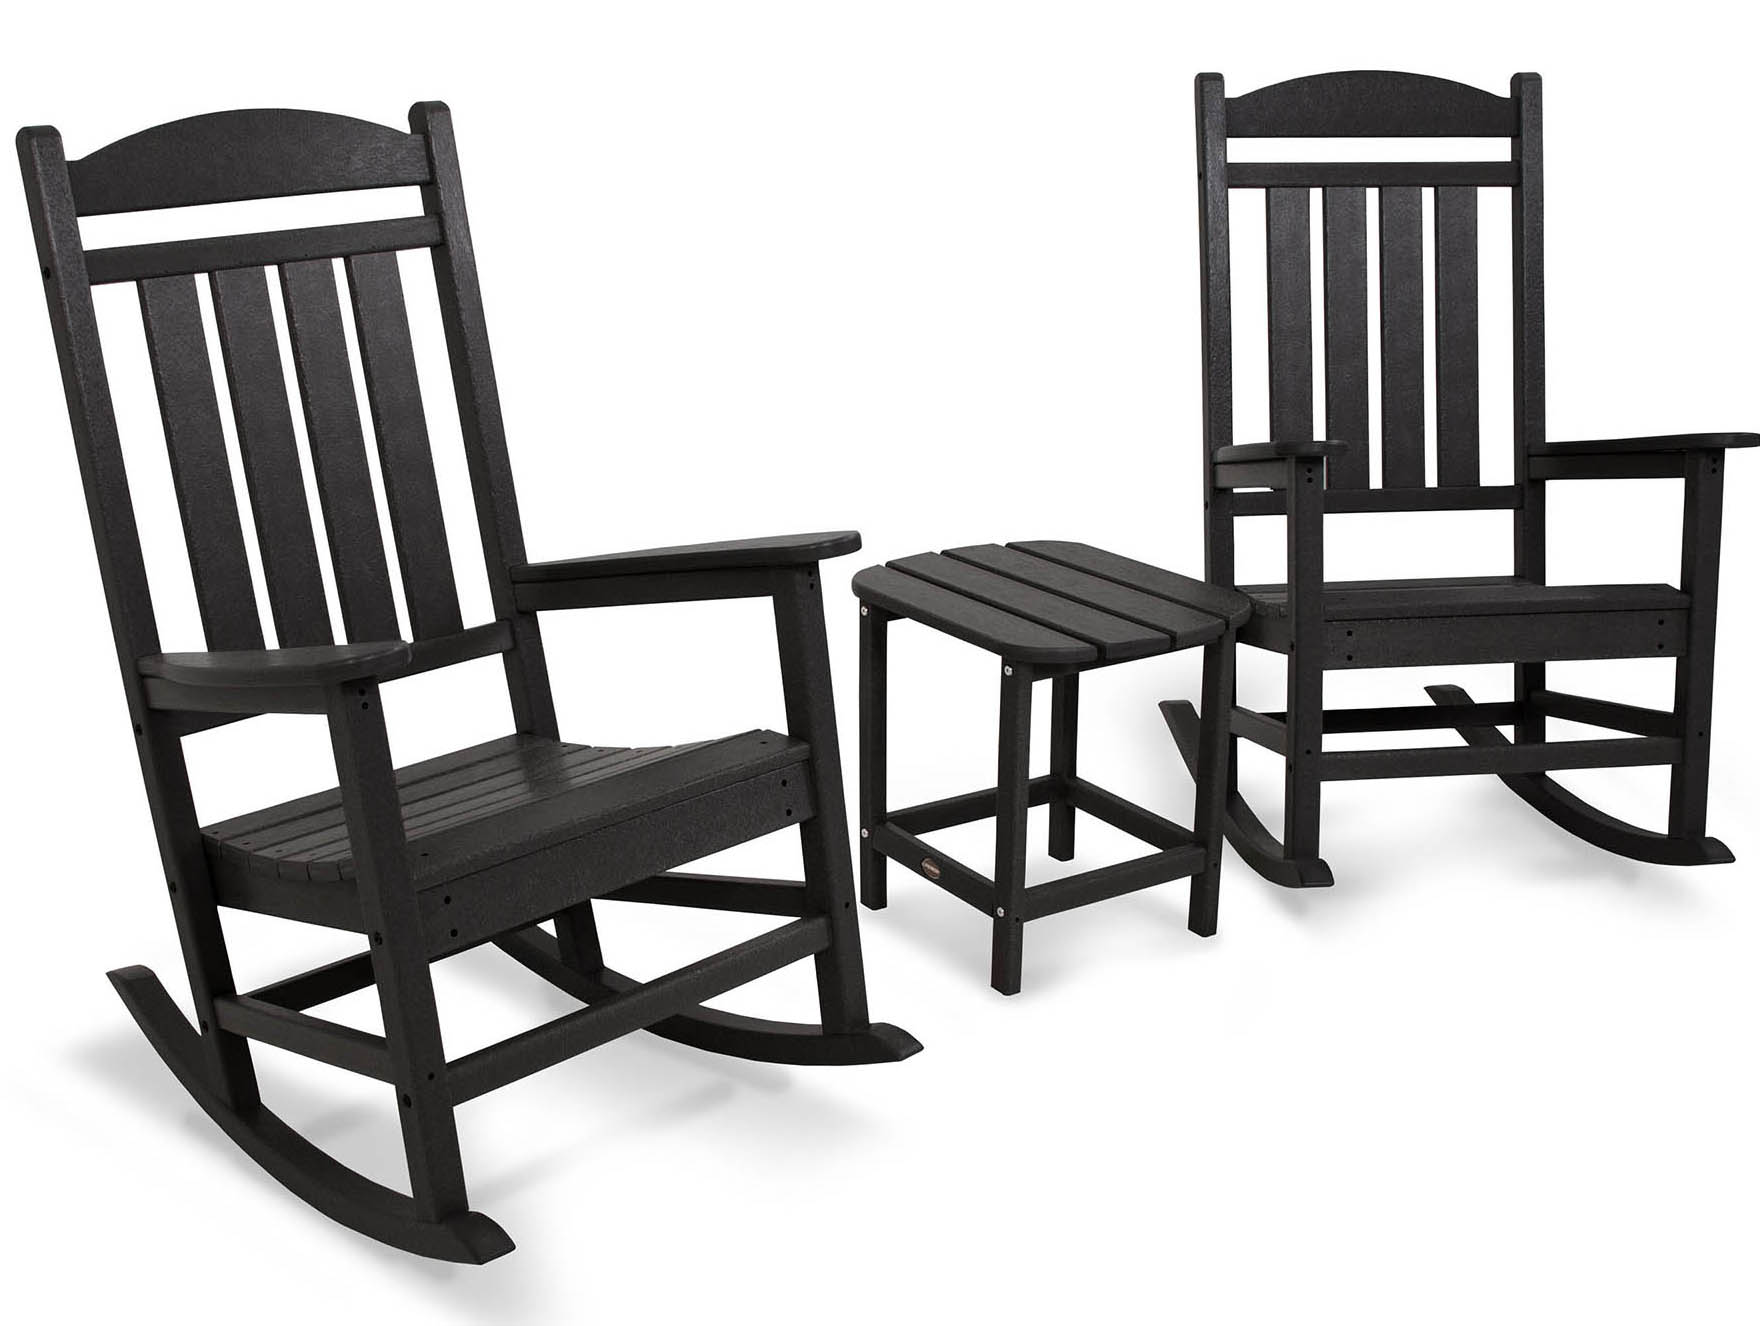 Buy Black-Presidential-Rocker-Set Product Image 12